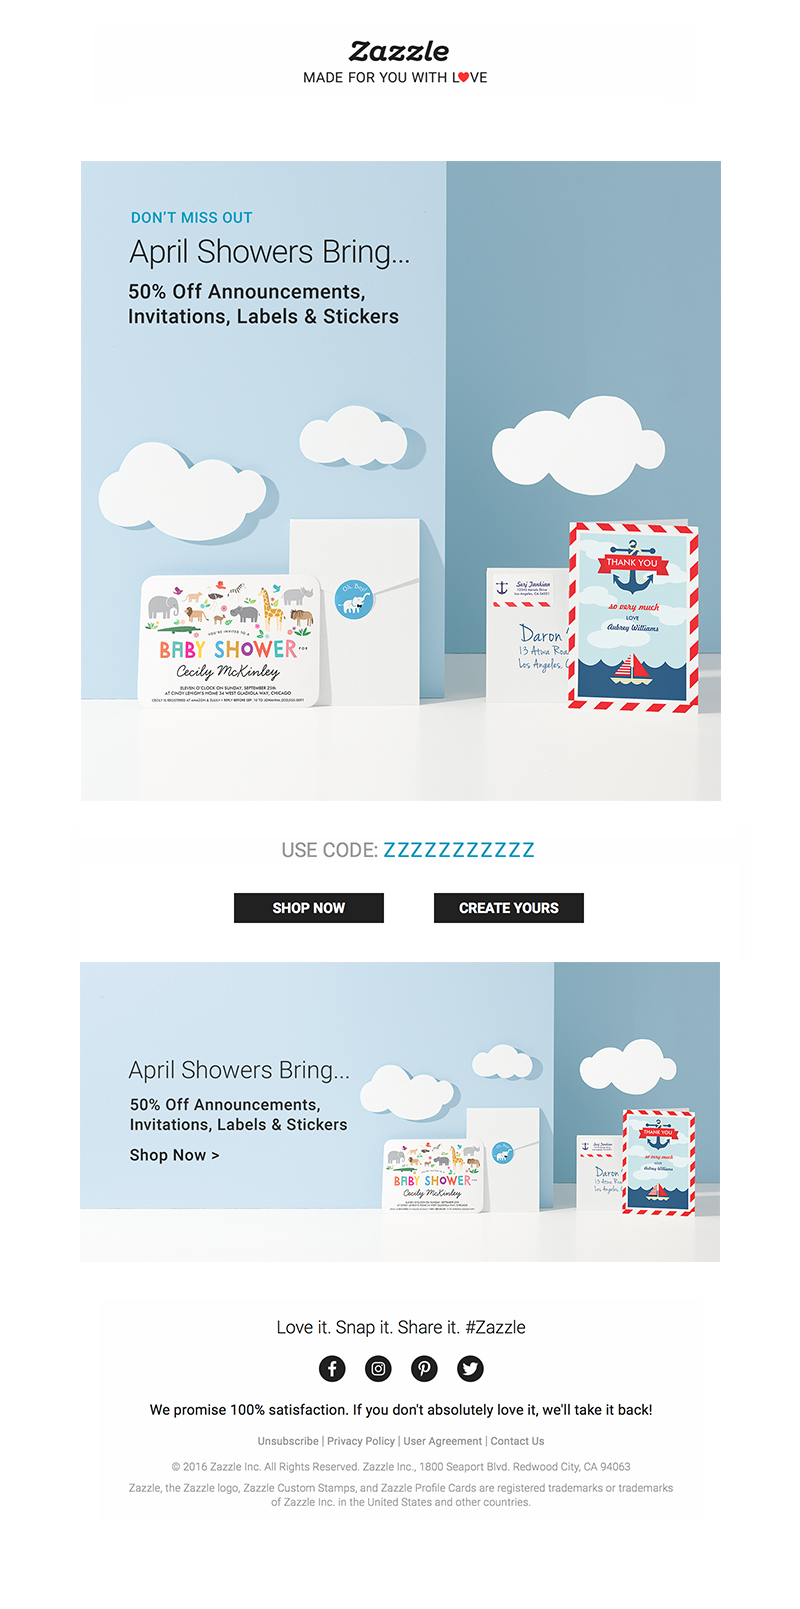 Email + Cross-Sell